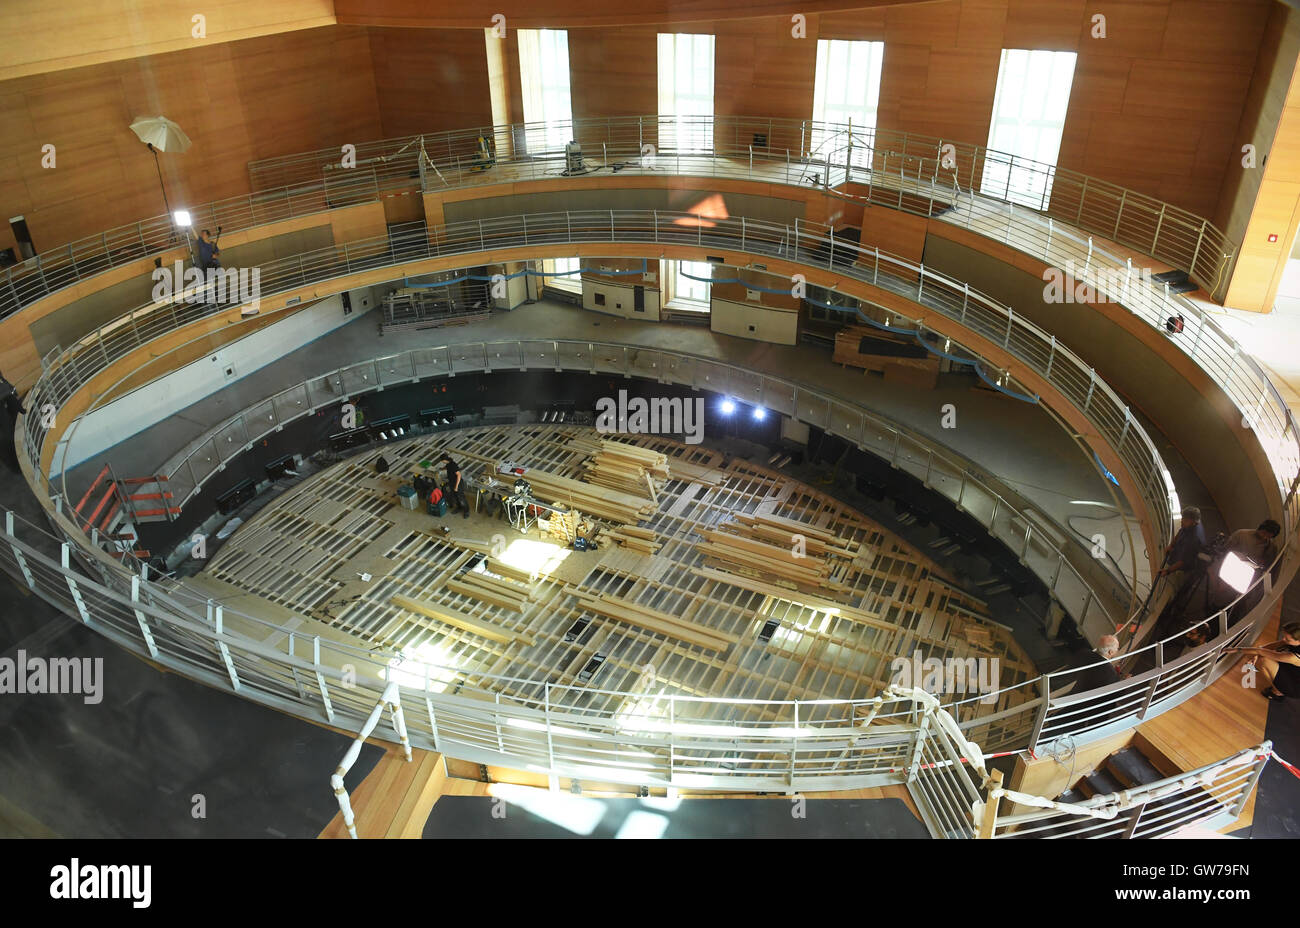 Berlin, Germany. 12th Sep, 2016. Workers work in the Pierre Boulez Saal in the Barenboim-Said Music Academy in Berlin, - Stock Image